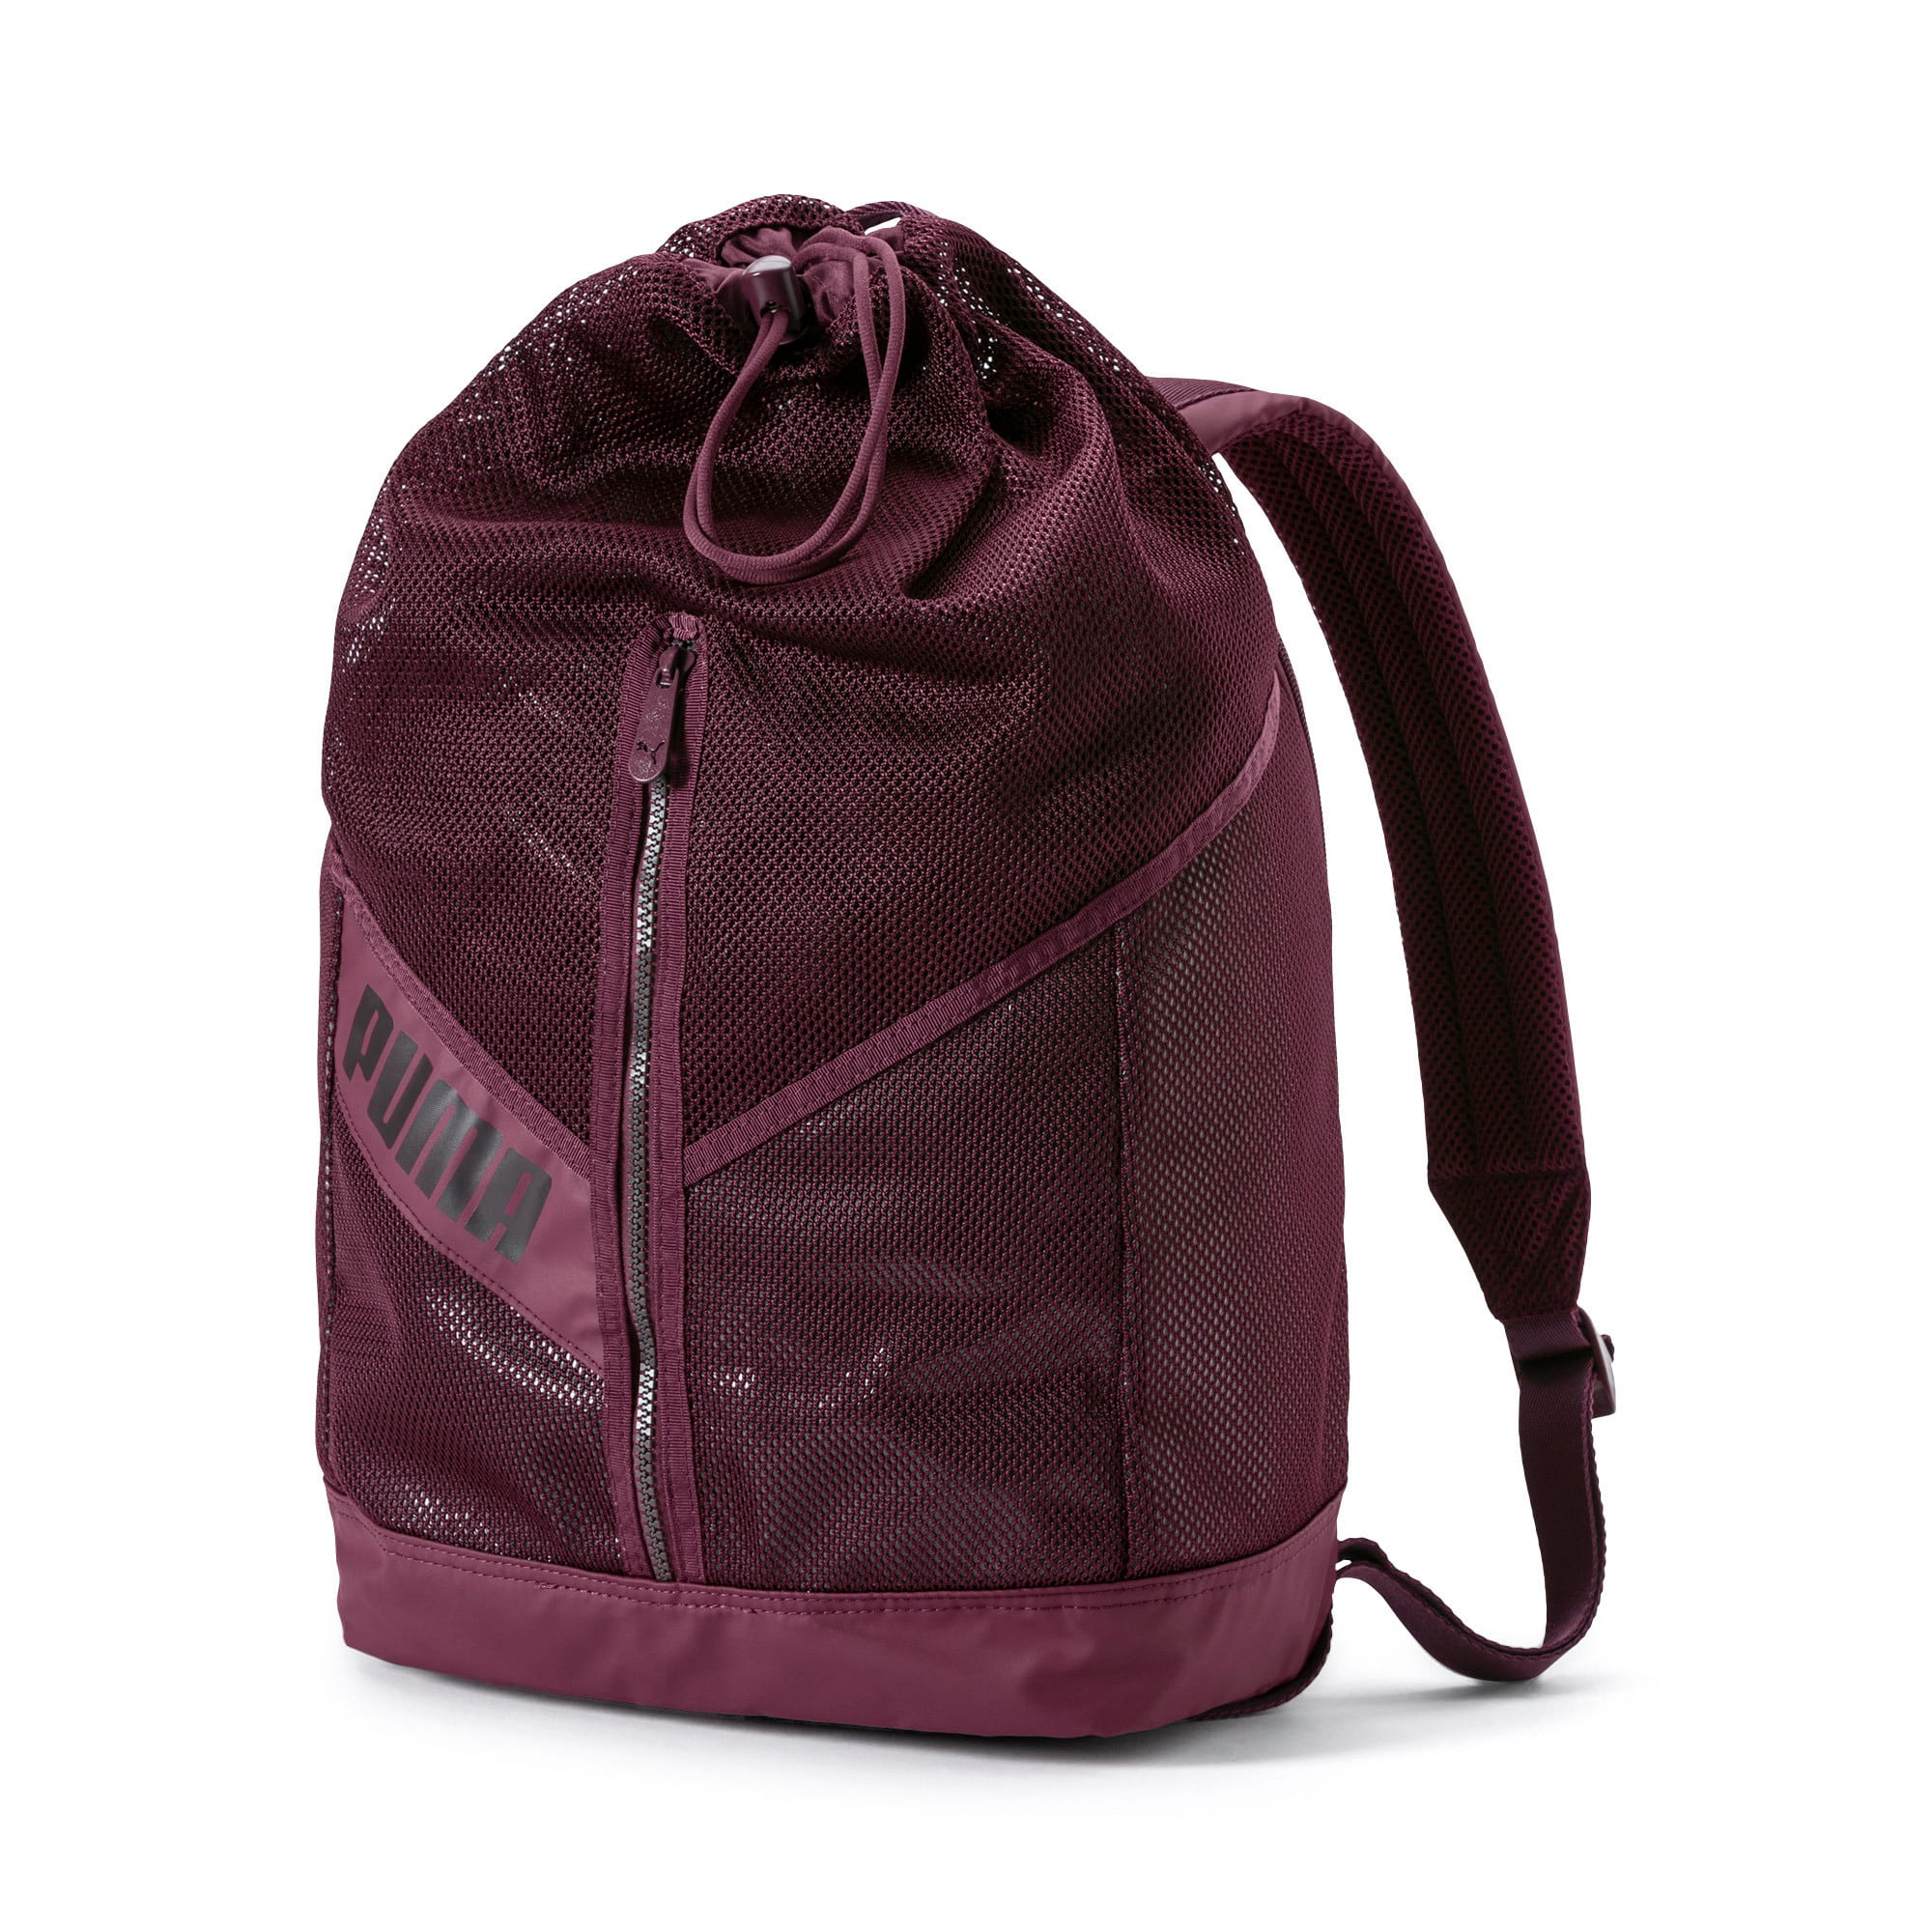 Thumbnail 1 of Ambition Women's Backpack, Fig-Bronze-metallic, medium-IND